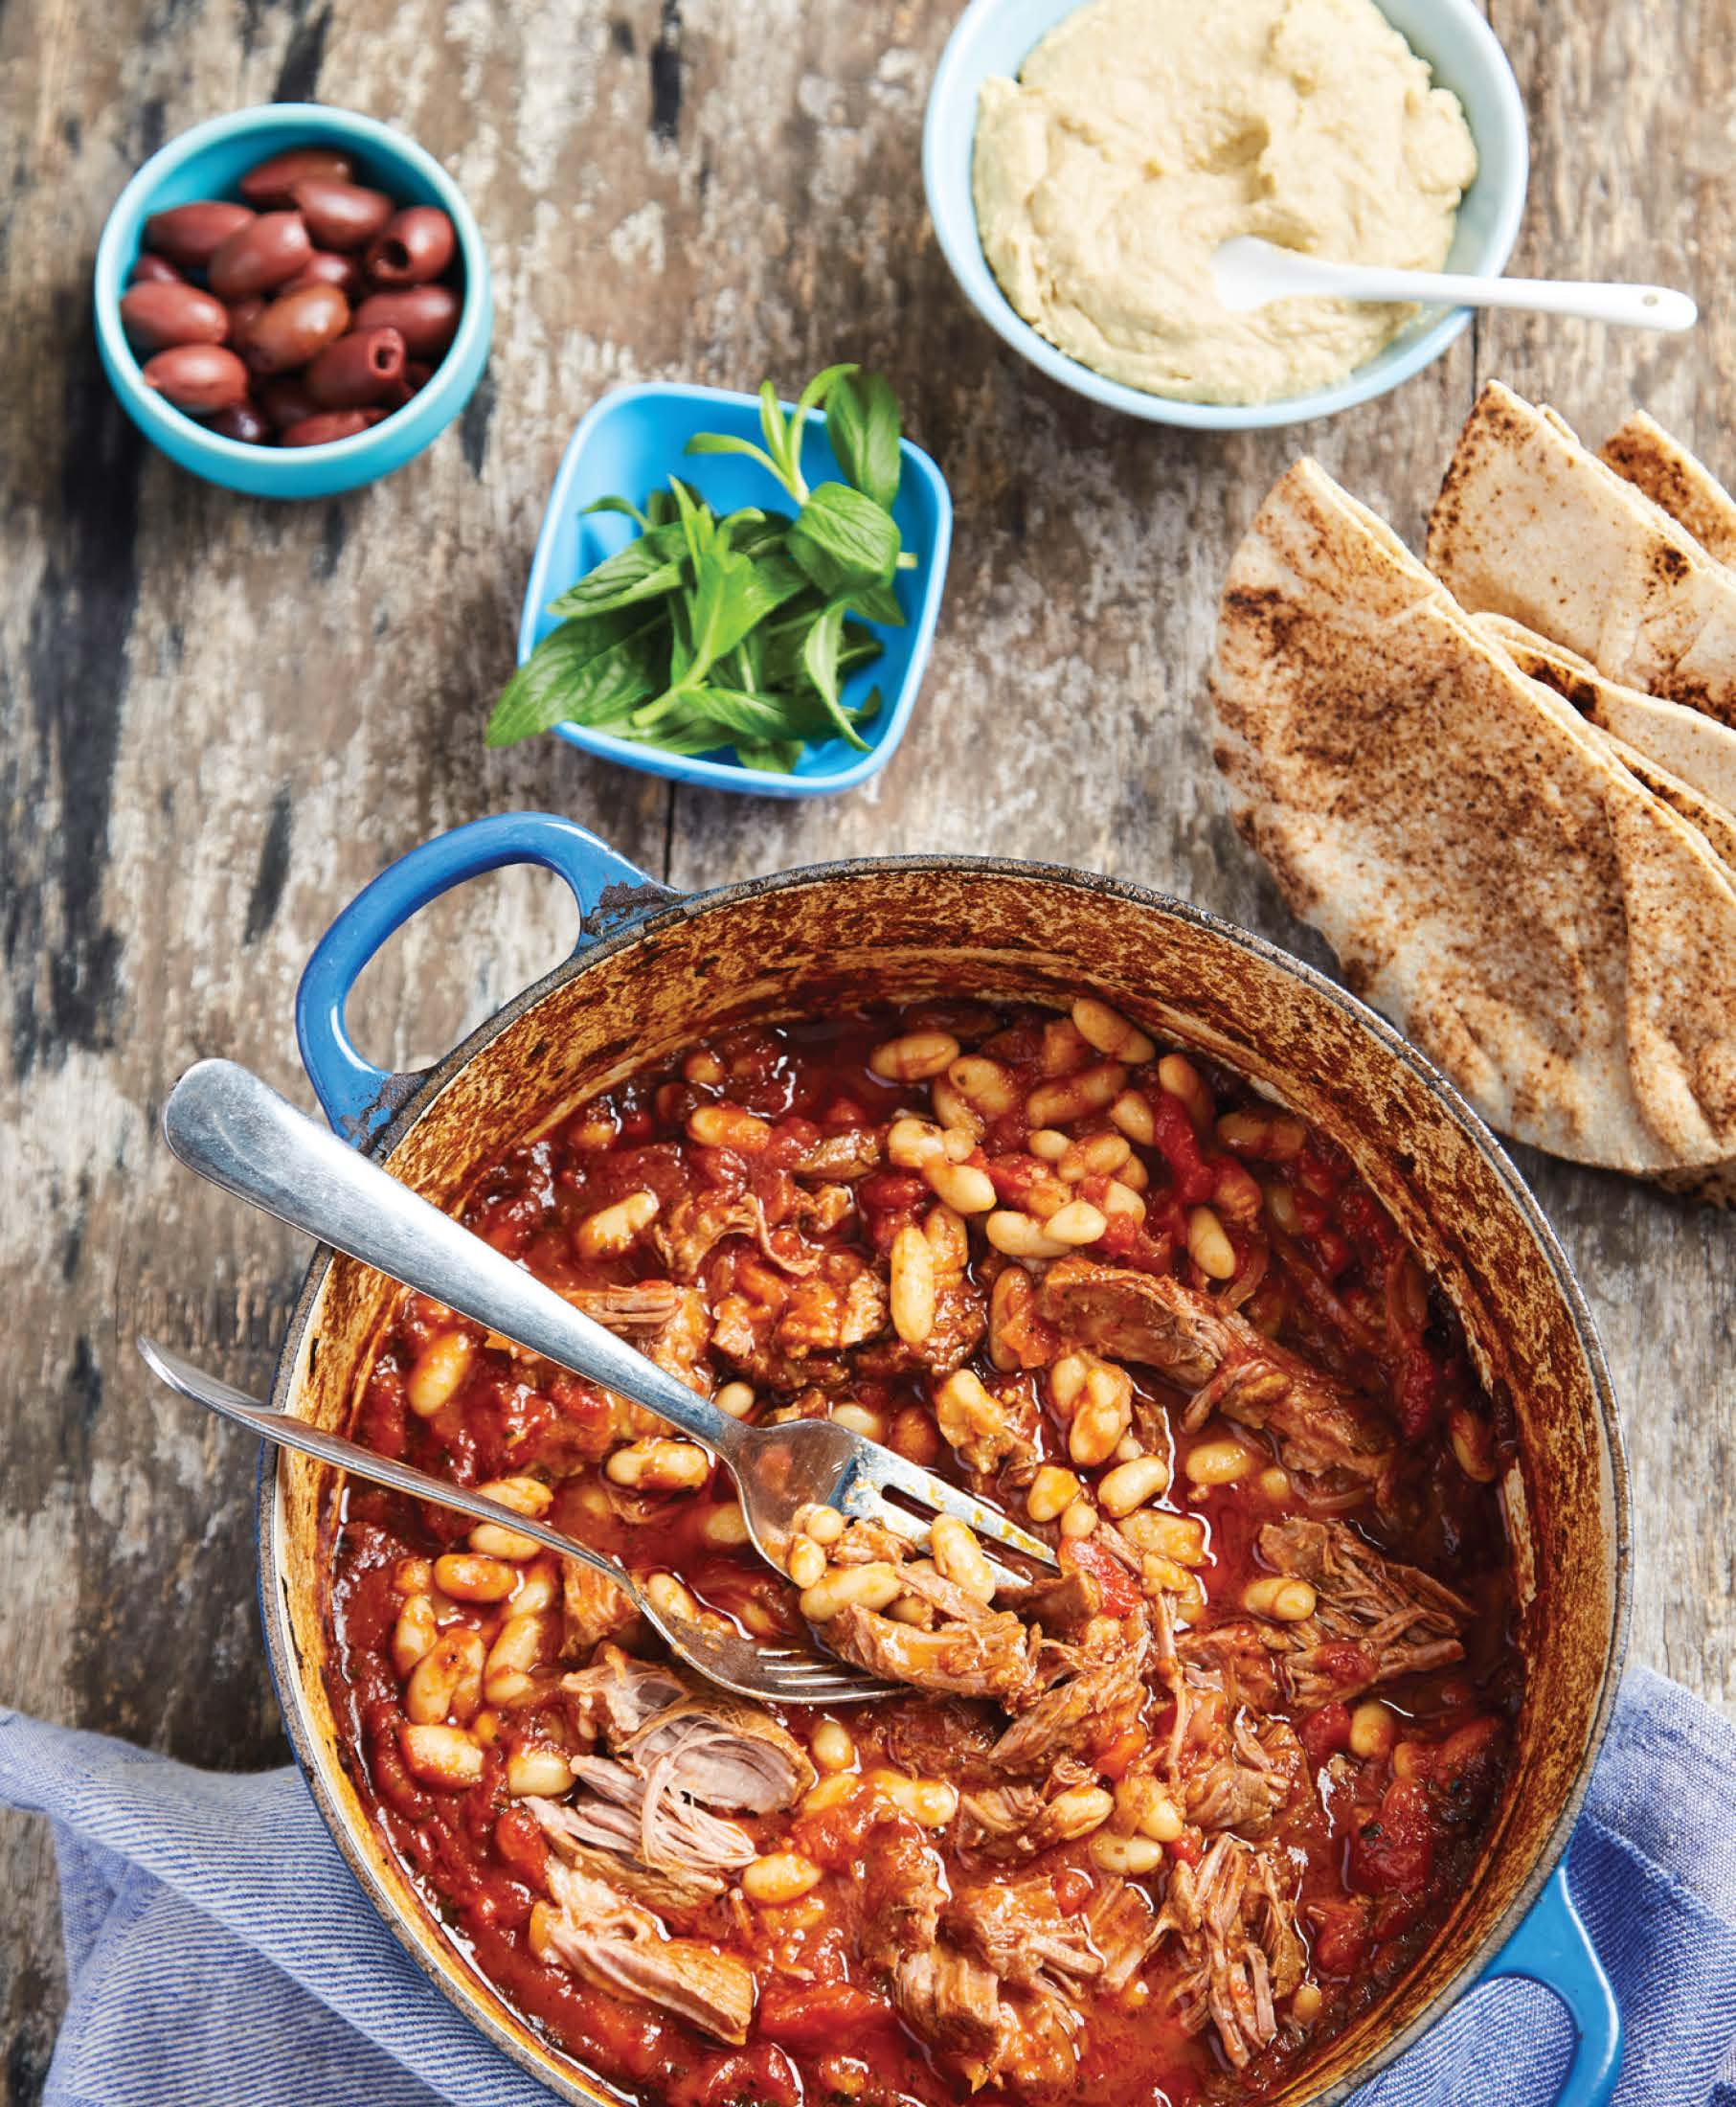 Slow-cooked lamb shoulder with cannellini beans and hummus